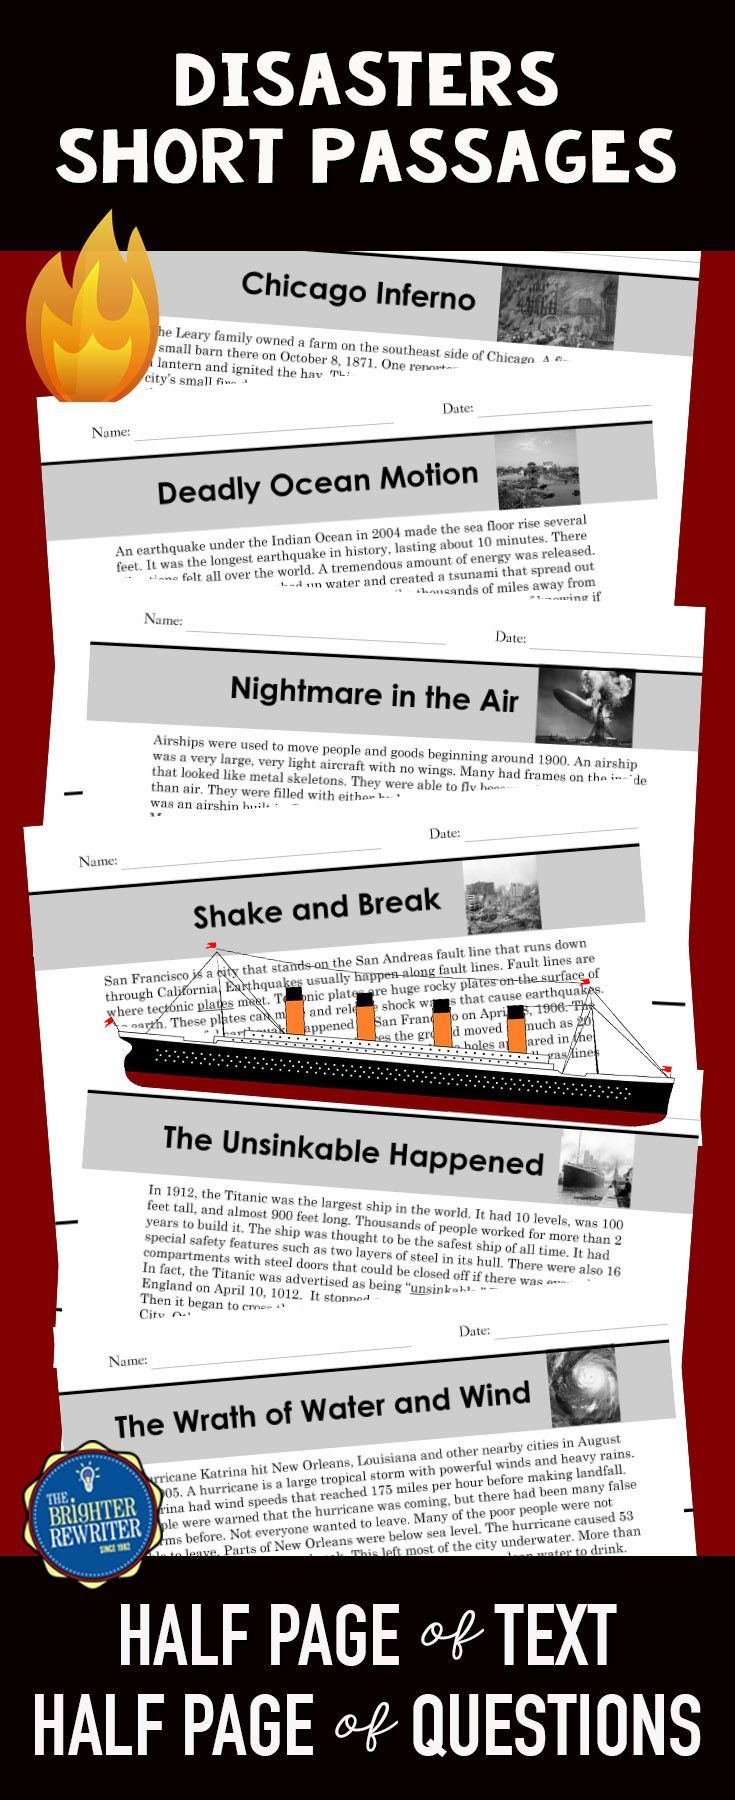 These 6 nonfiction mini-passages have a paragraph of informational text and 4 multiple-choice comprehension questions on one page. The paragraph topics are different historical disasters, including the great Chicago fire, the San Francisco earthquake, the sinking of the Titanic, the explosion of the Hindenburg, the Boxing Day Tsunami, and Hurricane Katrina. Great way to integrate reading and social studies!